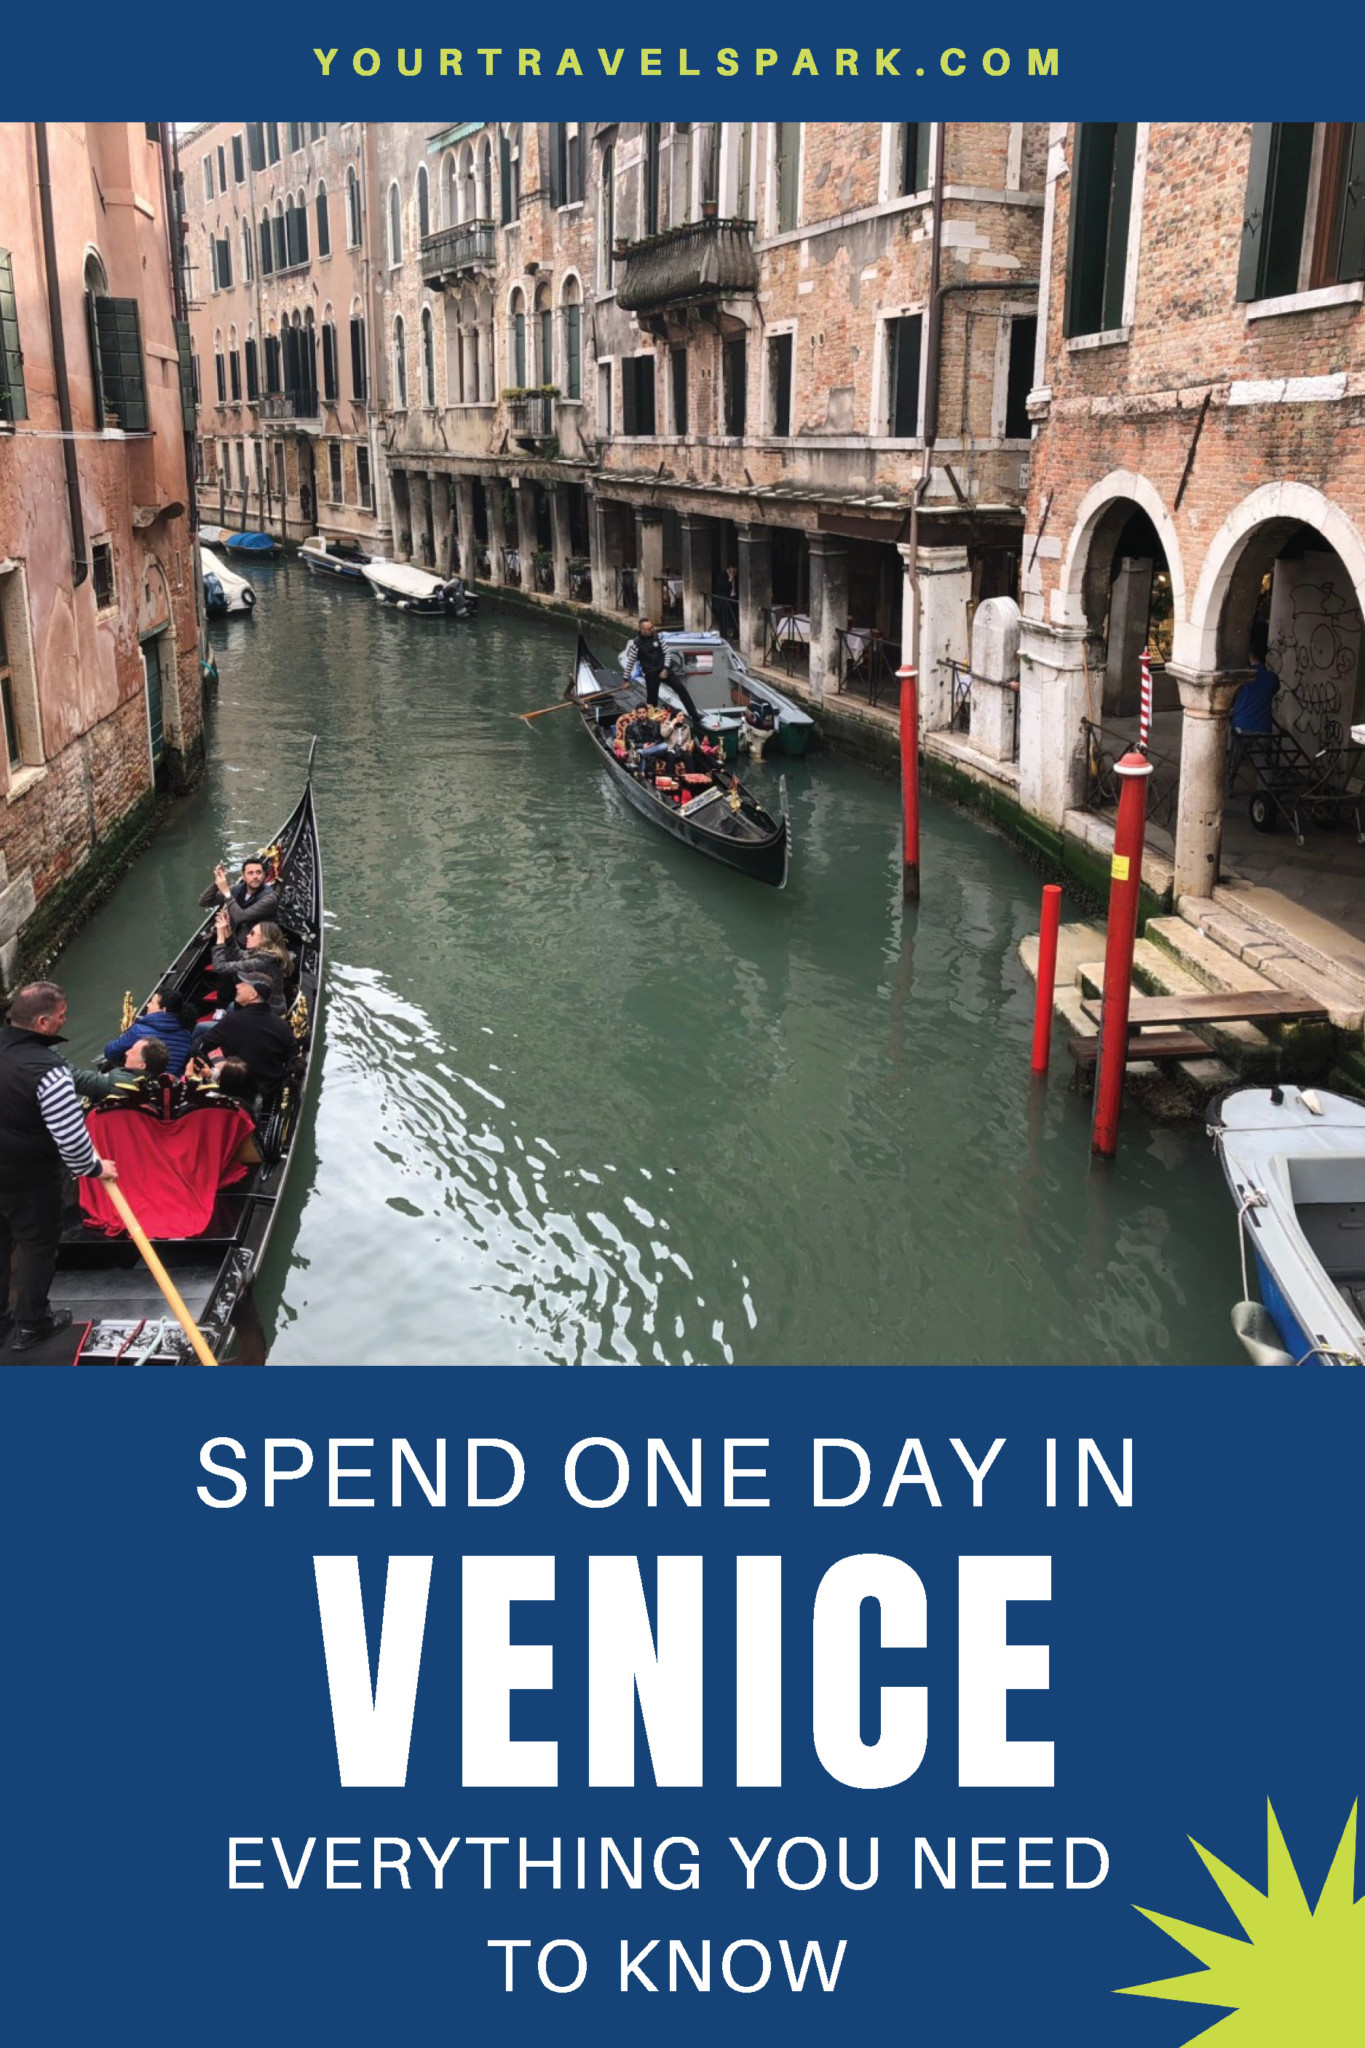 Venice, Italy is a beautiful destination. Here are our favorite things to do if you have one day in Venice. #venice #veniceitaly #venezia #italia #thingstodoinvenice #stmarks #grandcanal